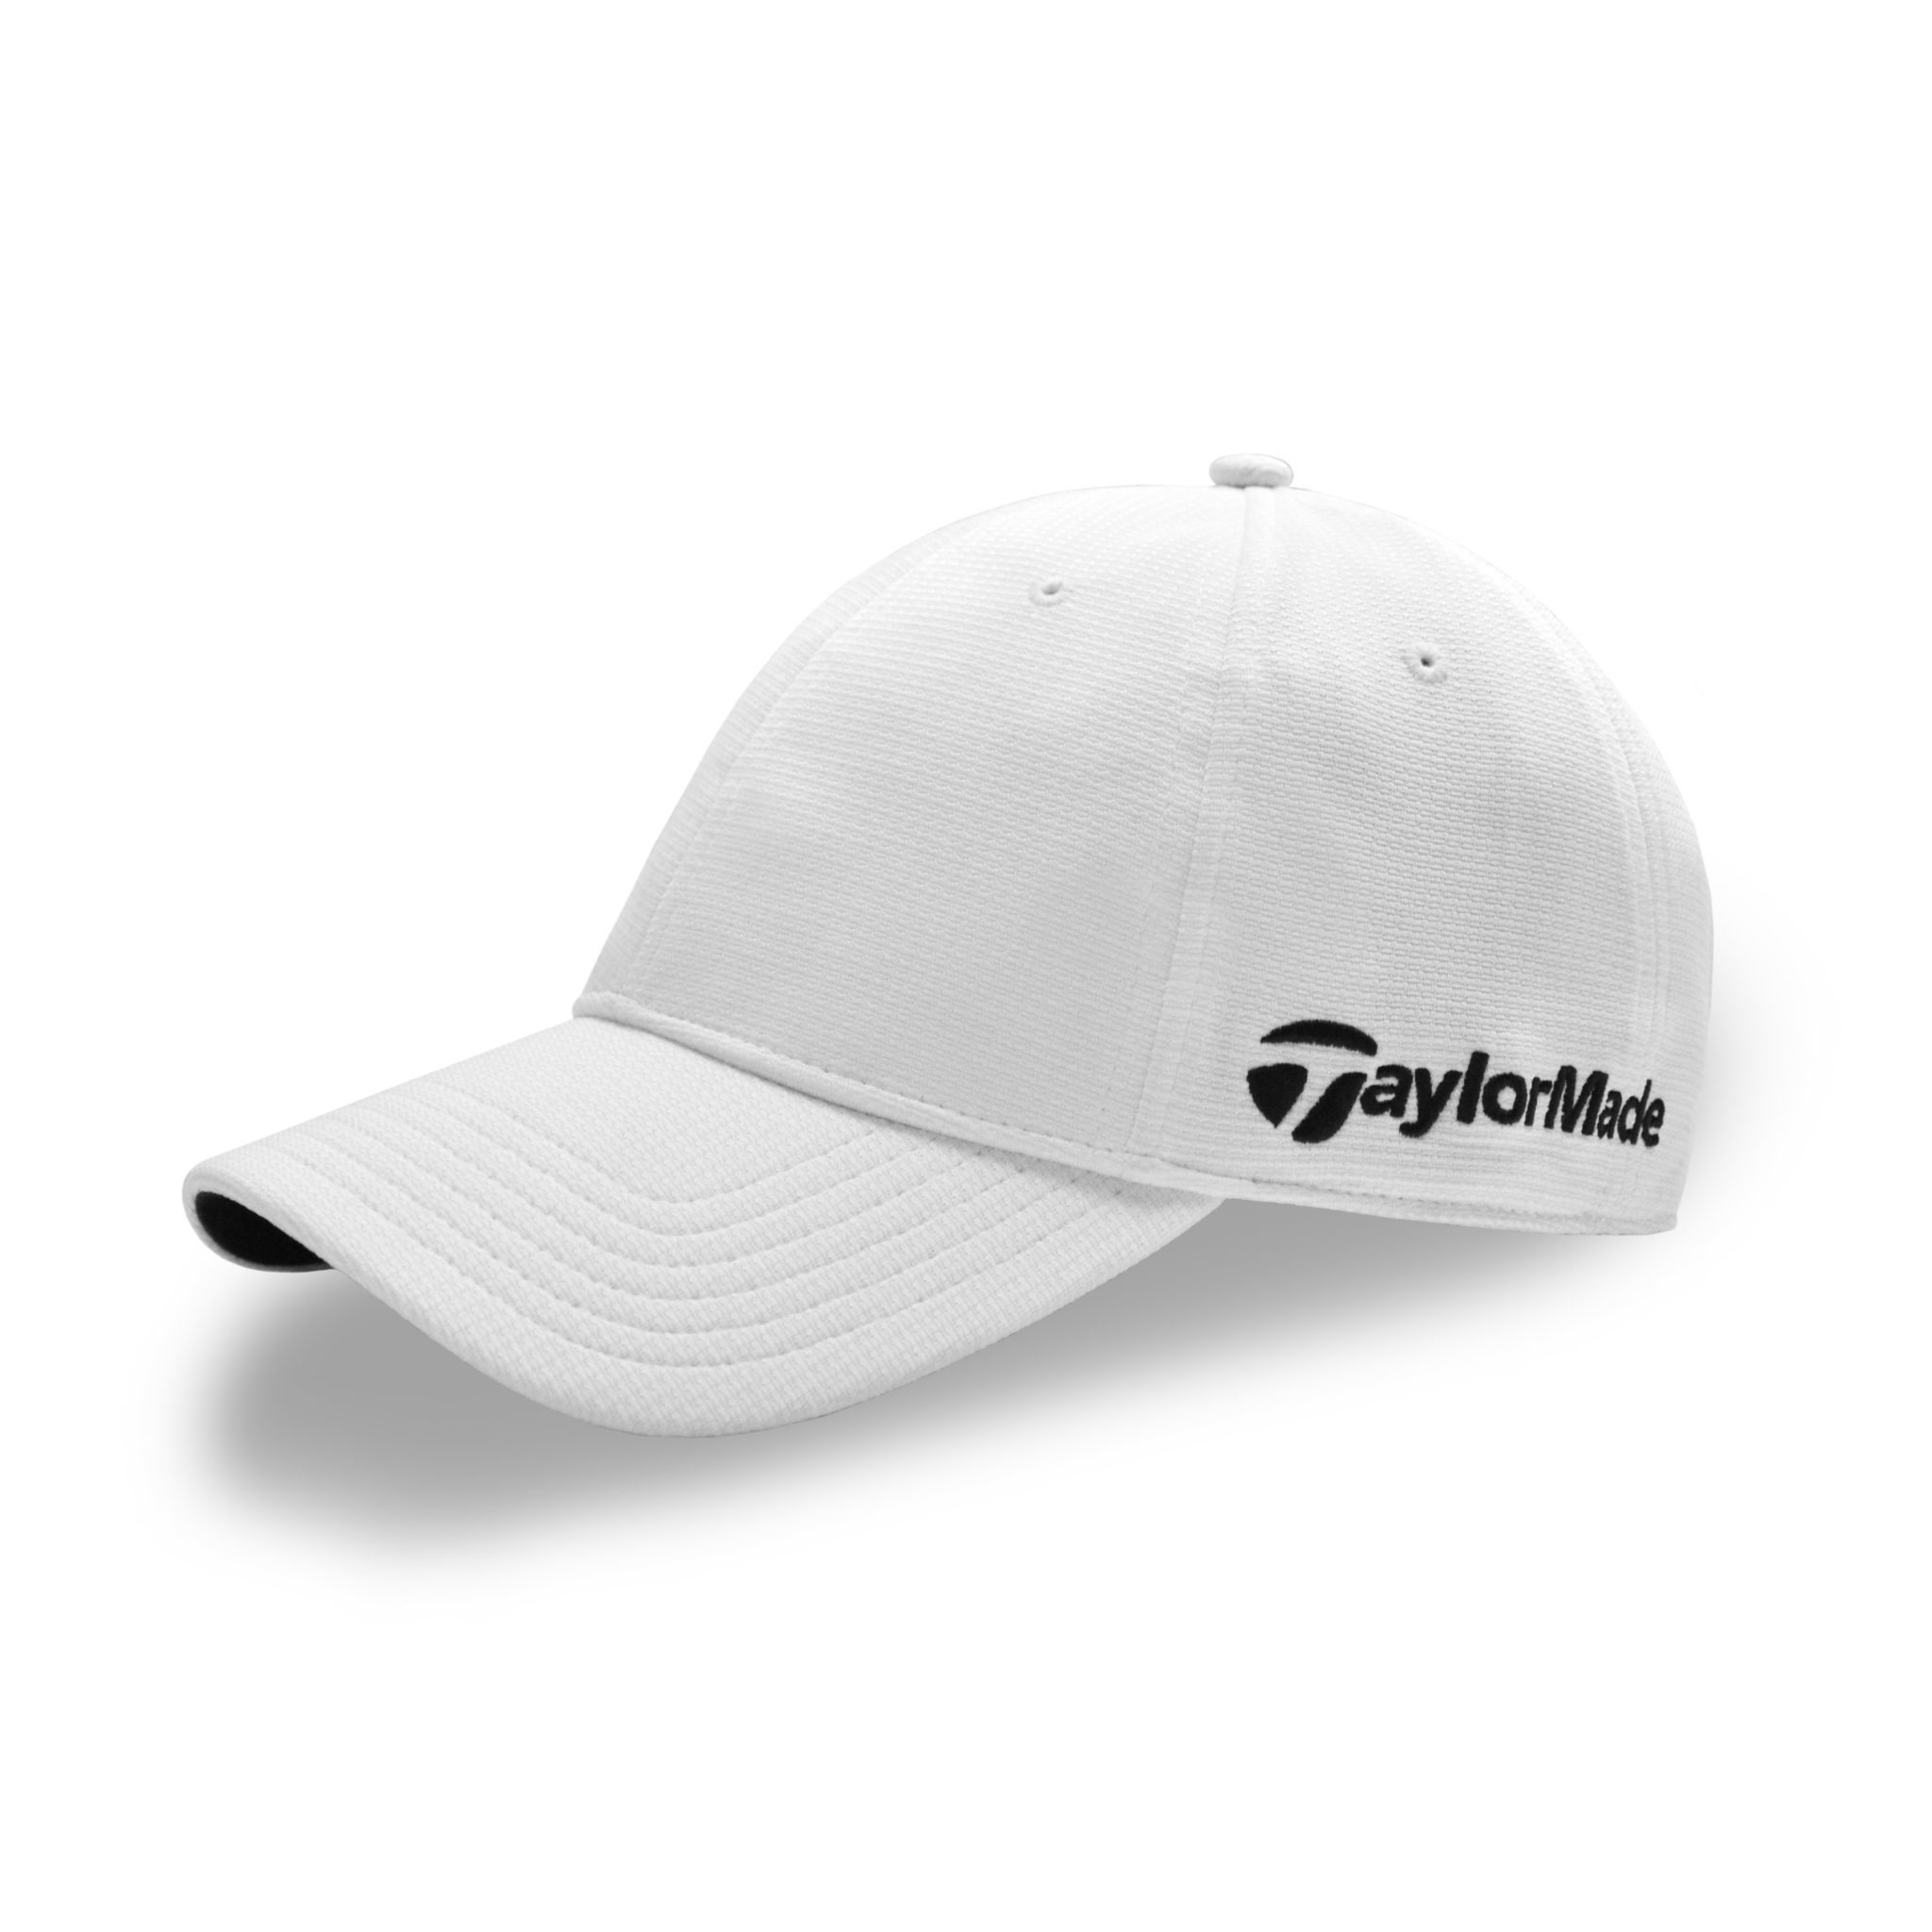 Taylormade Custom Tour Radar Hat